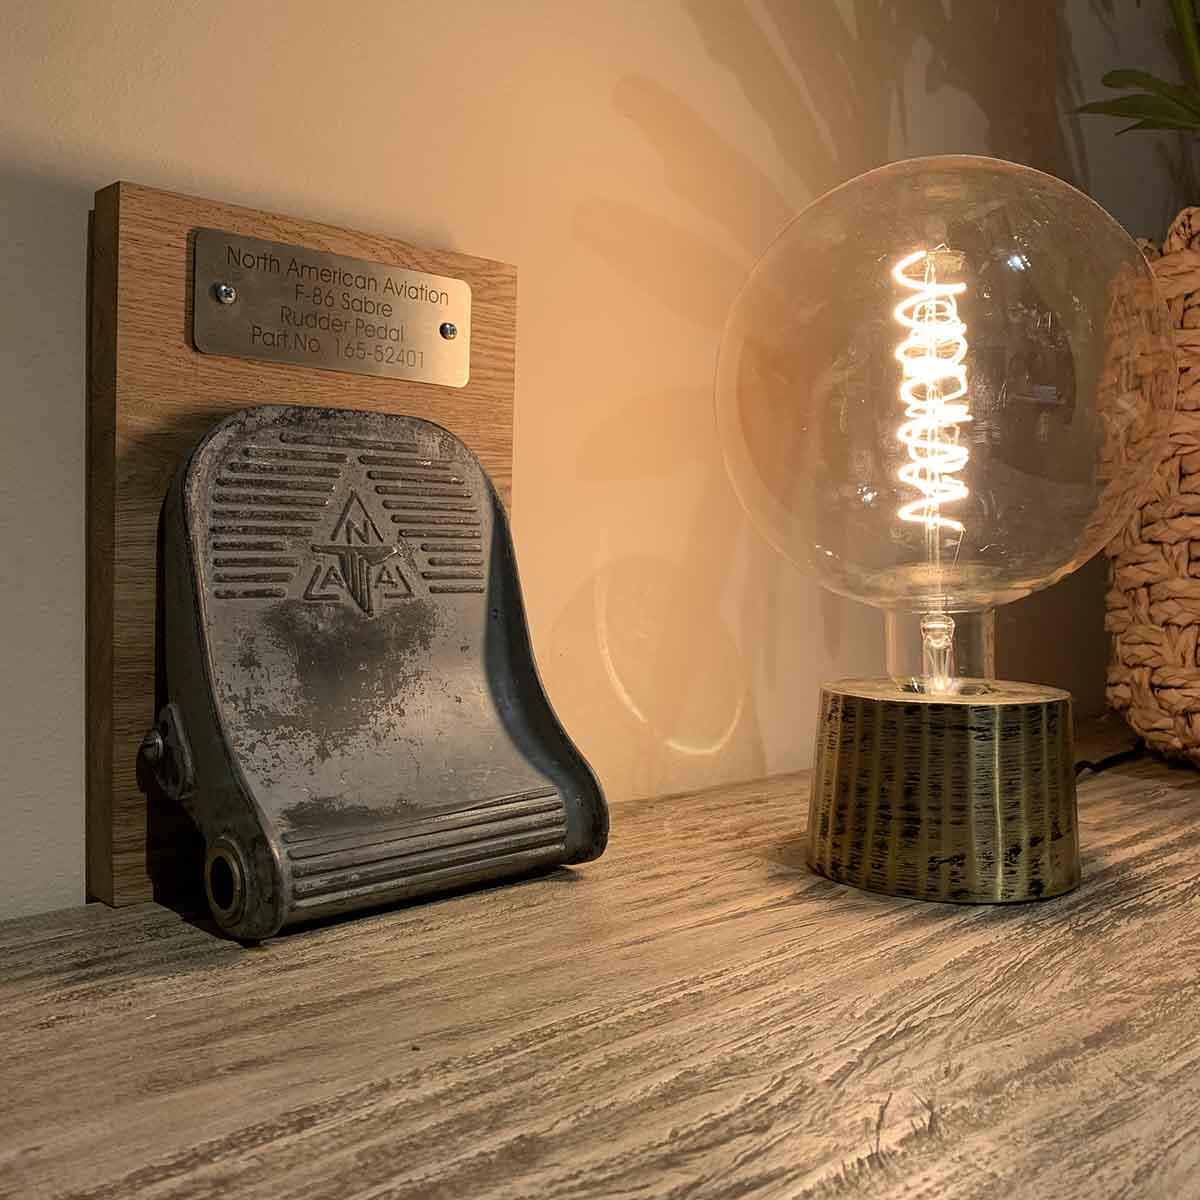 North American F-86 Sabre rudder pedal on a wooden base next to a lamp.